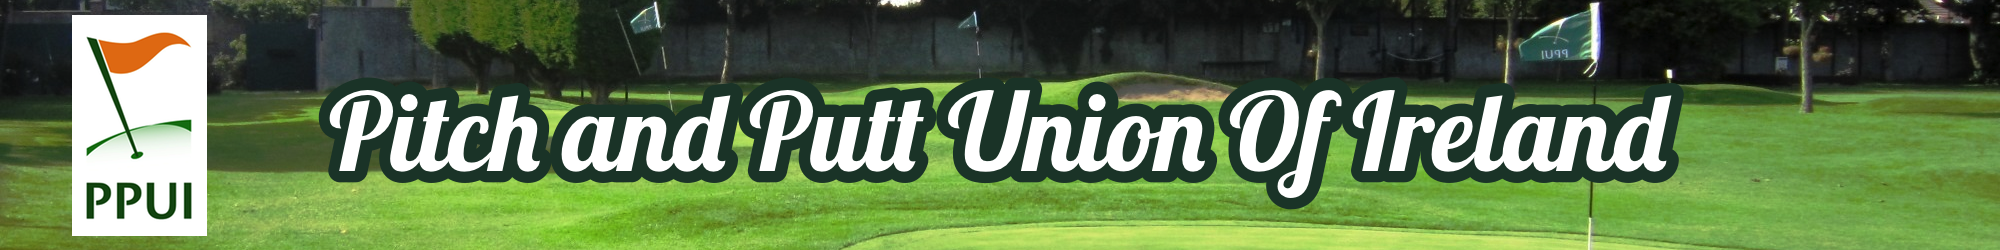 Pitch and Putt Union of Ireland Banner